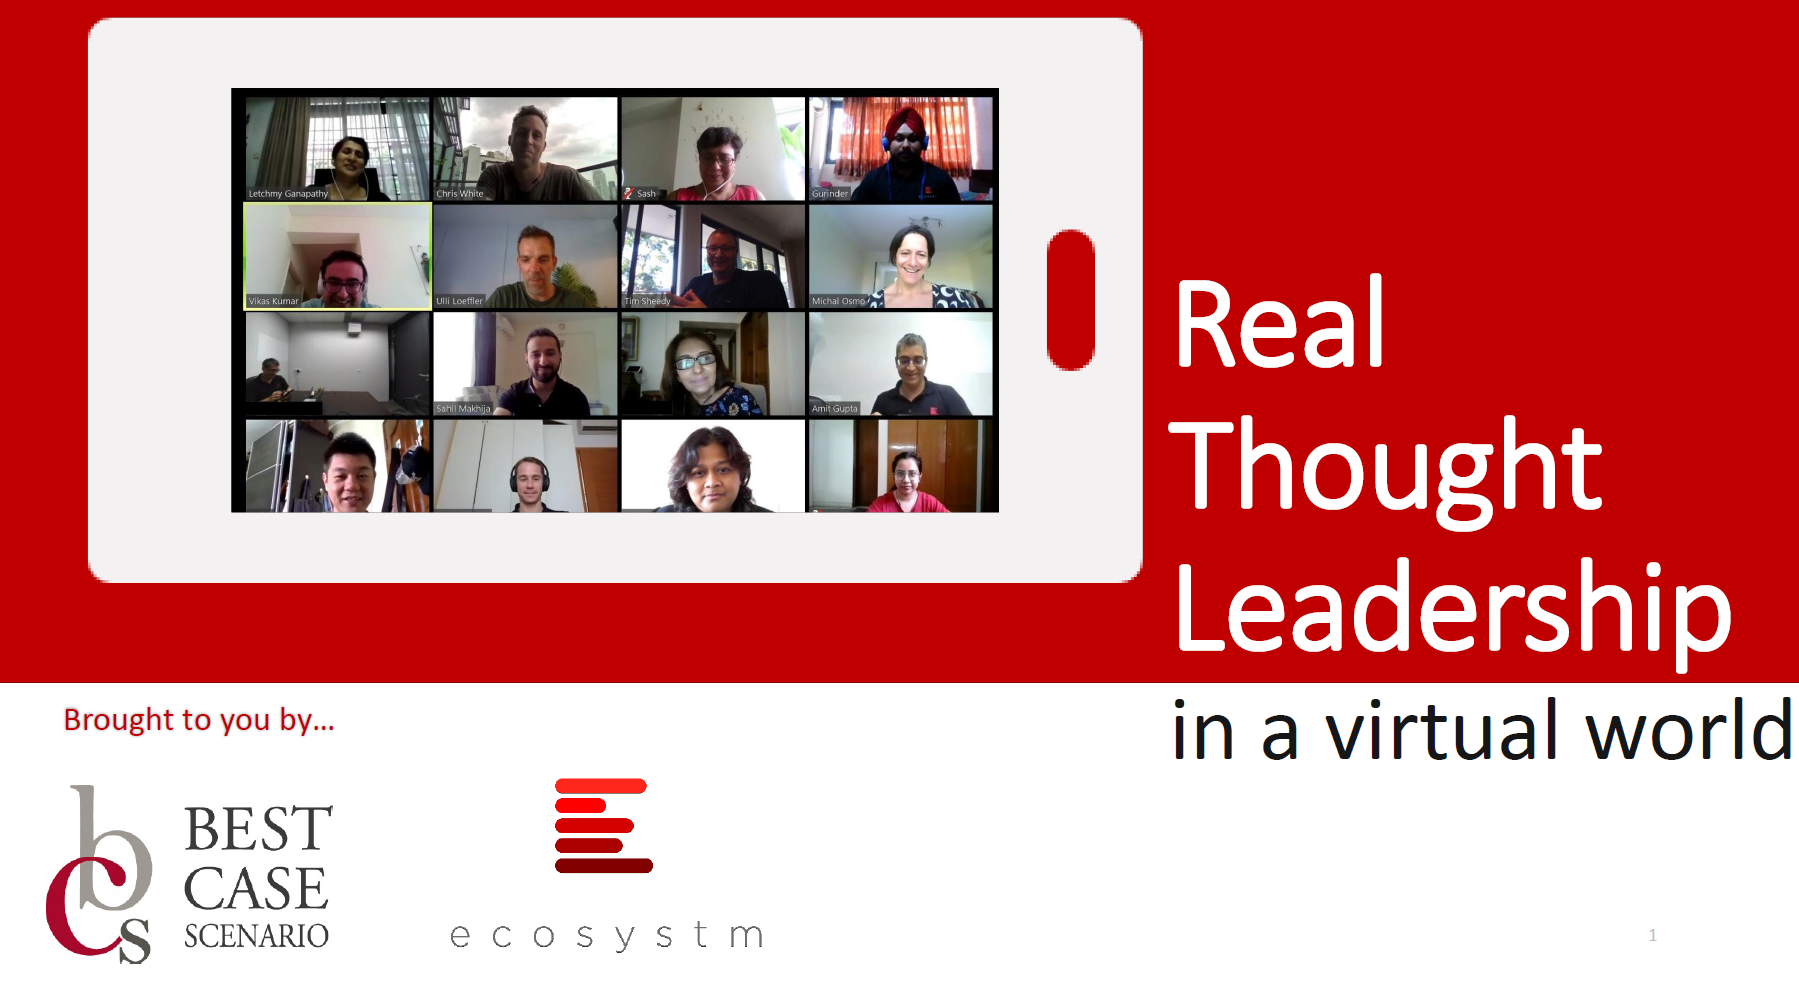 Real Thought Leadership in a Virtual World